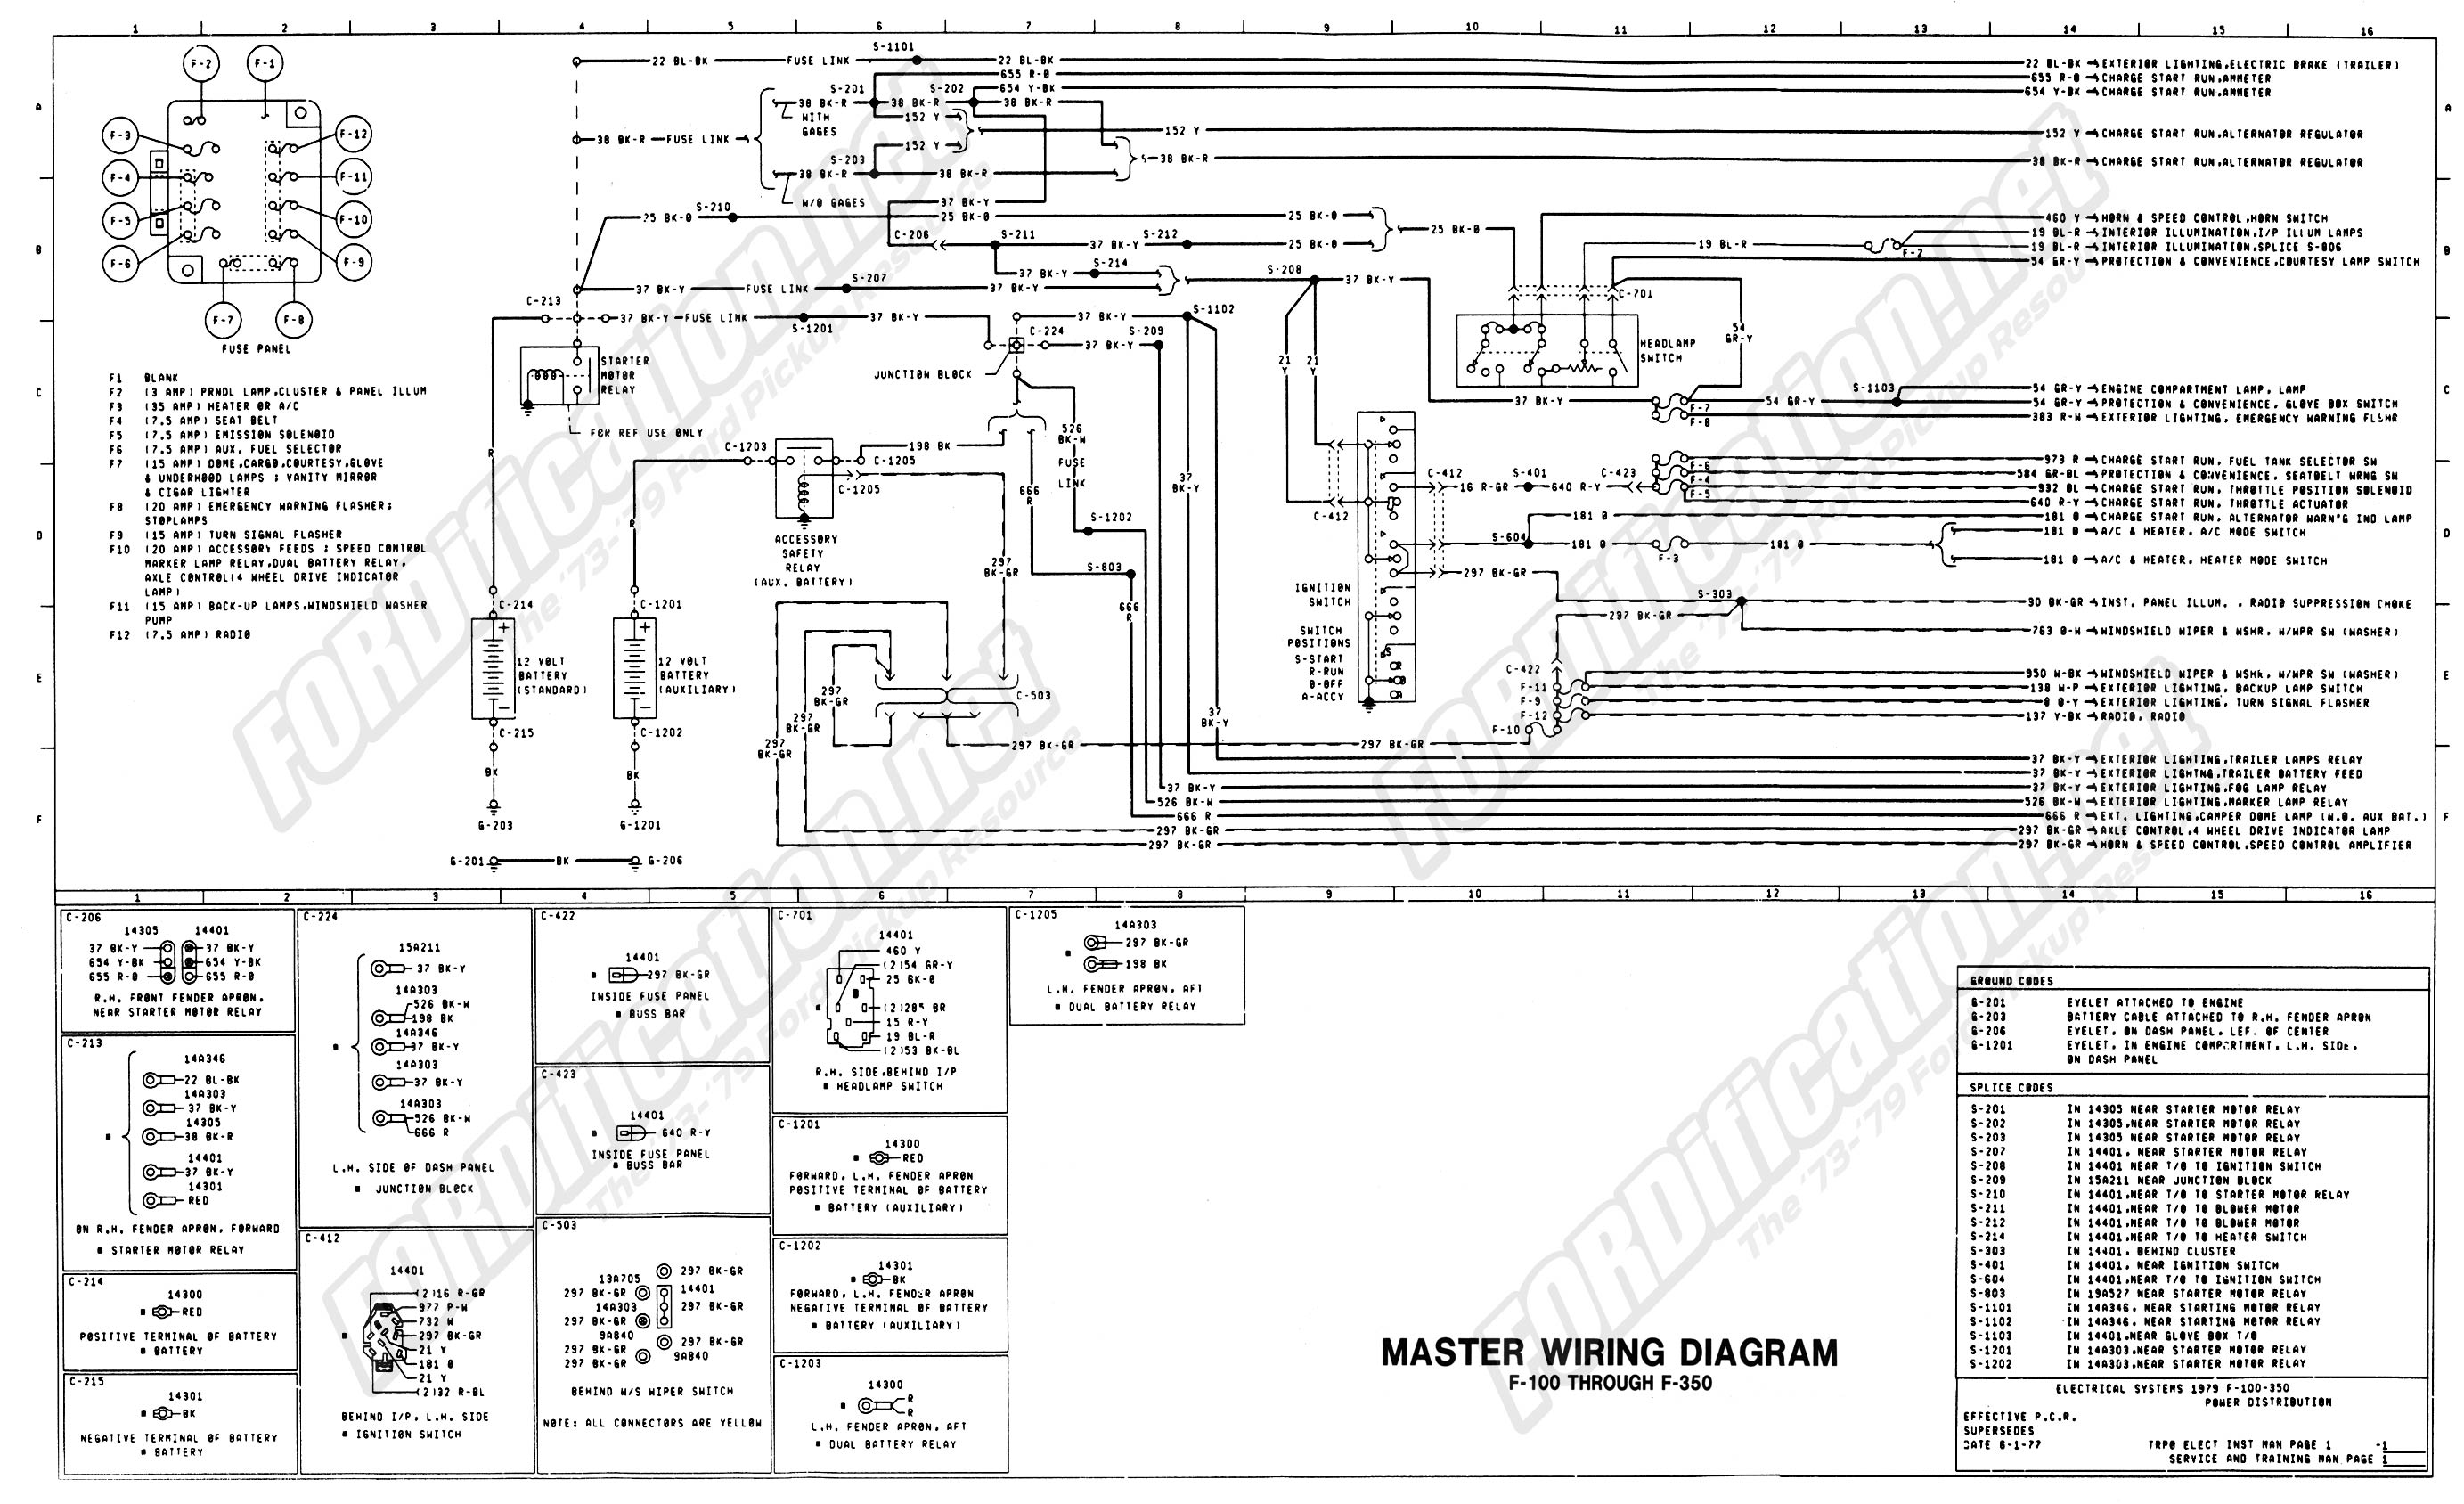 wiring_79master_1of9 1973 1979 ford truck wiring diagrams & schematics fordification net international truck wiring diagram at gsmx.co